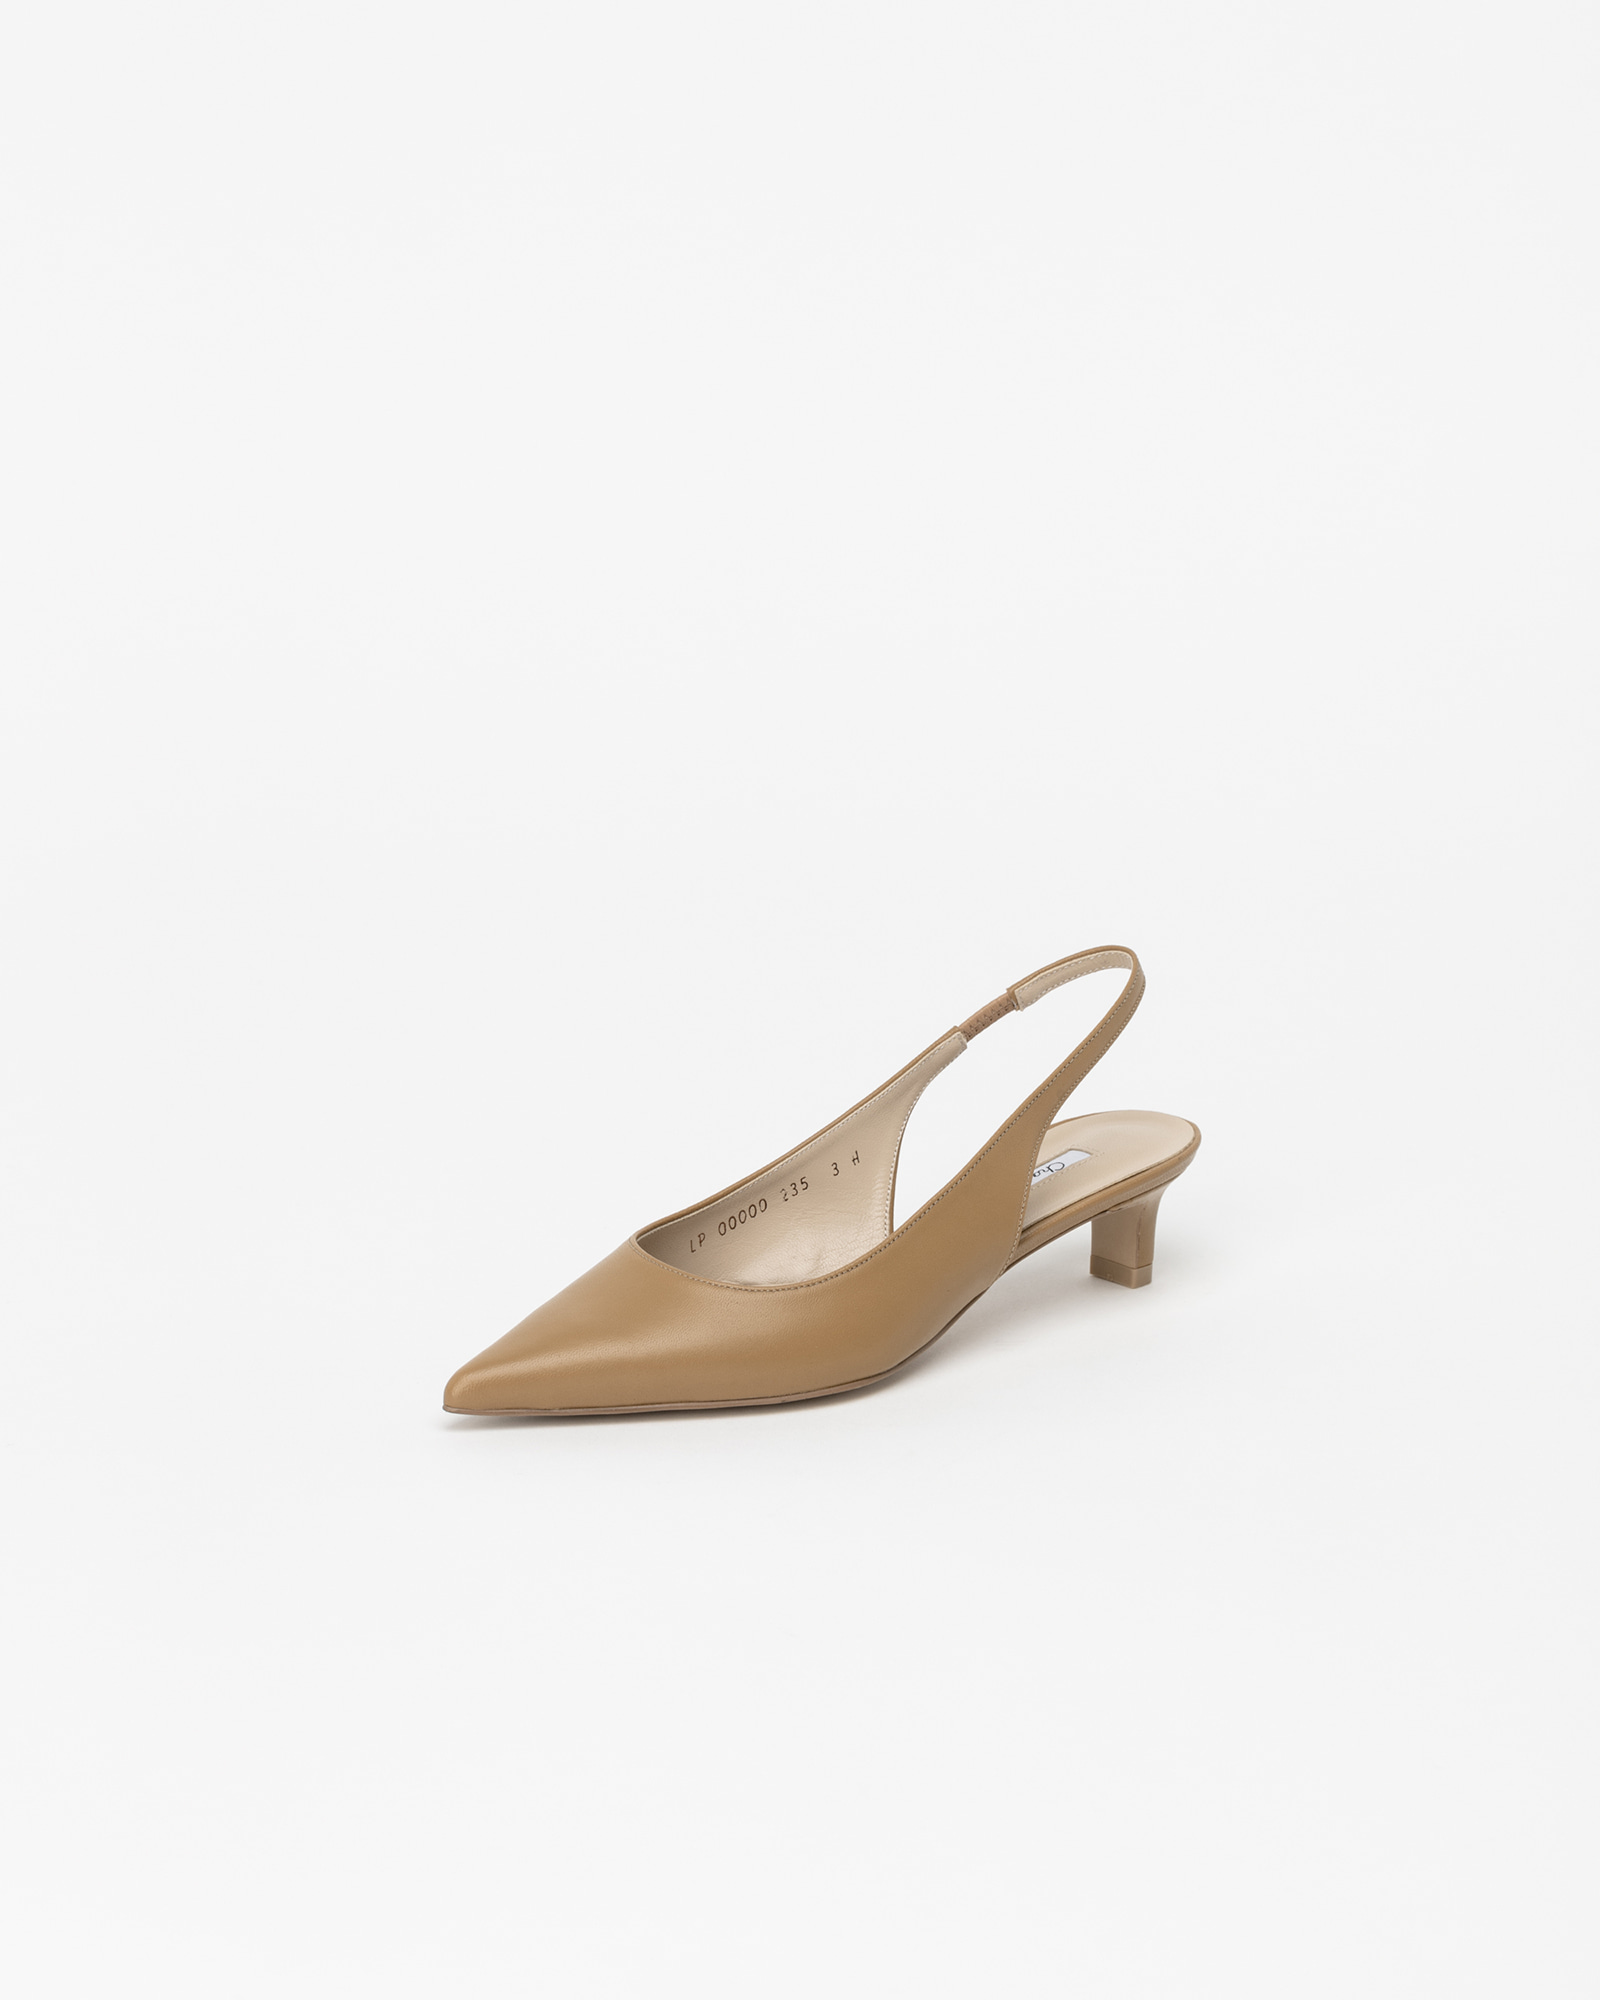 Philo Nouvelle Slingbacks in Mud Brown